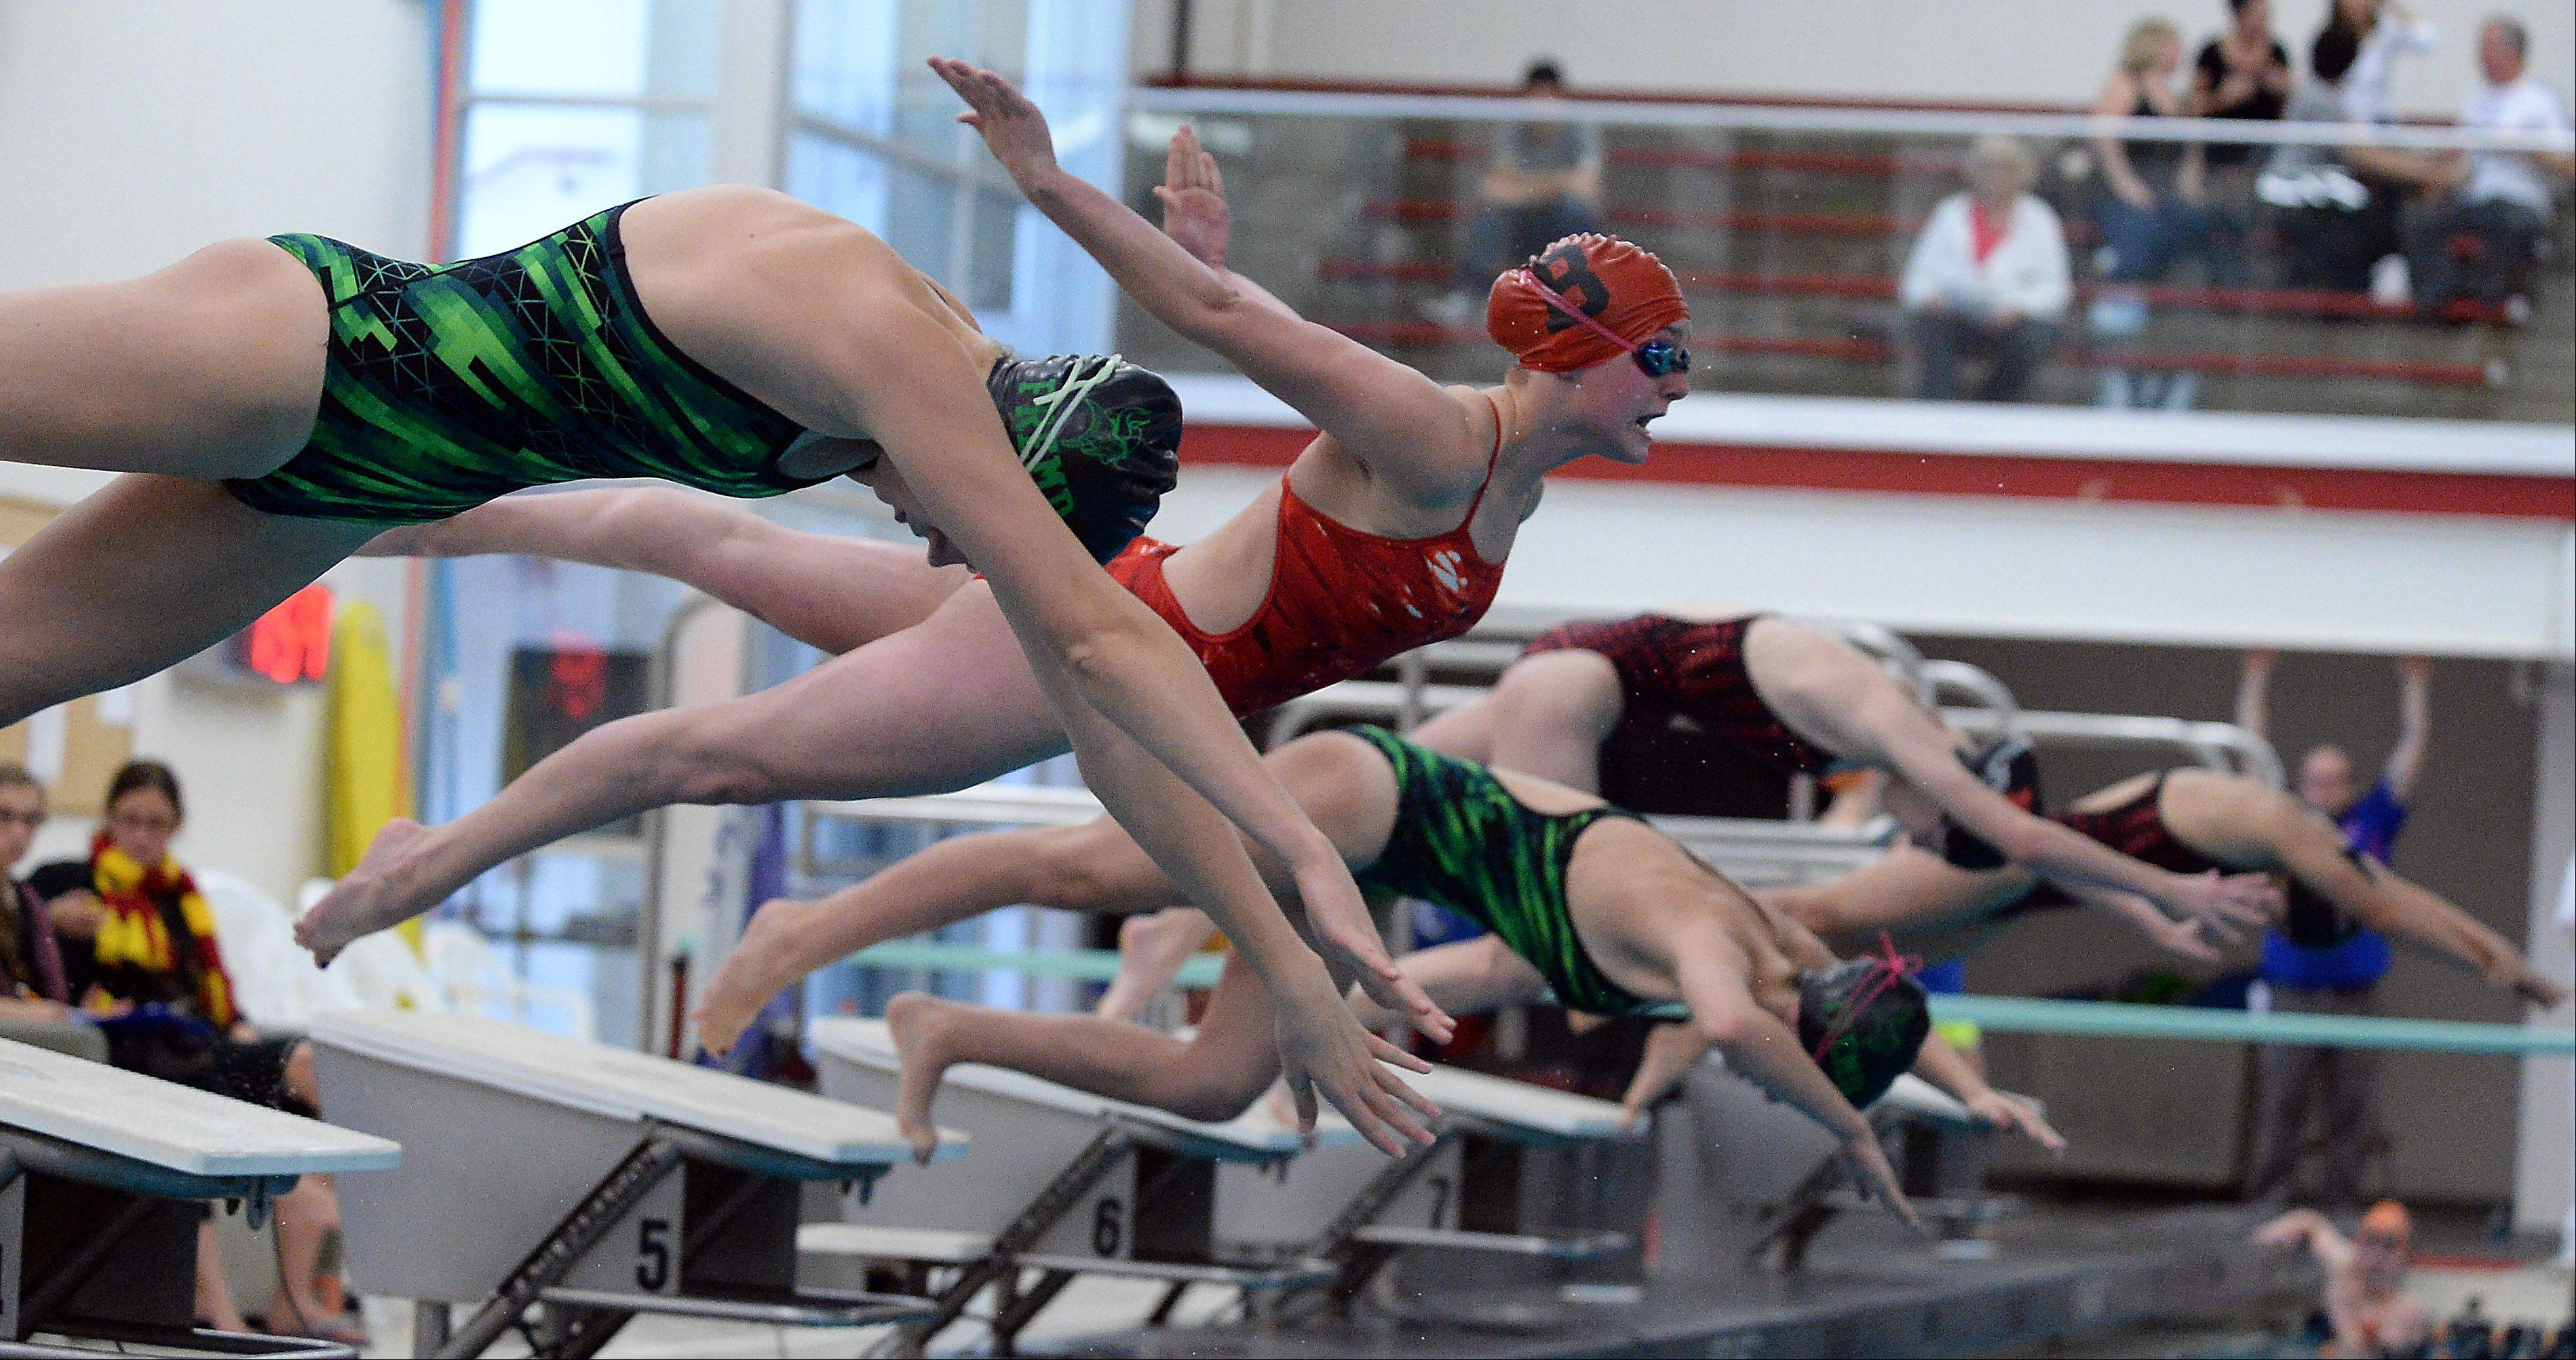 Barrington's Mekenna Scheitlin (second from left) takes flight on her way to a victory in the 100-yard freestyle at the Mid-Suburban League championships in Barrington on Saturday.